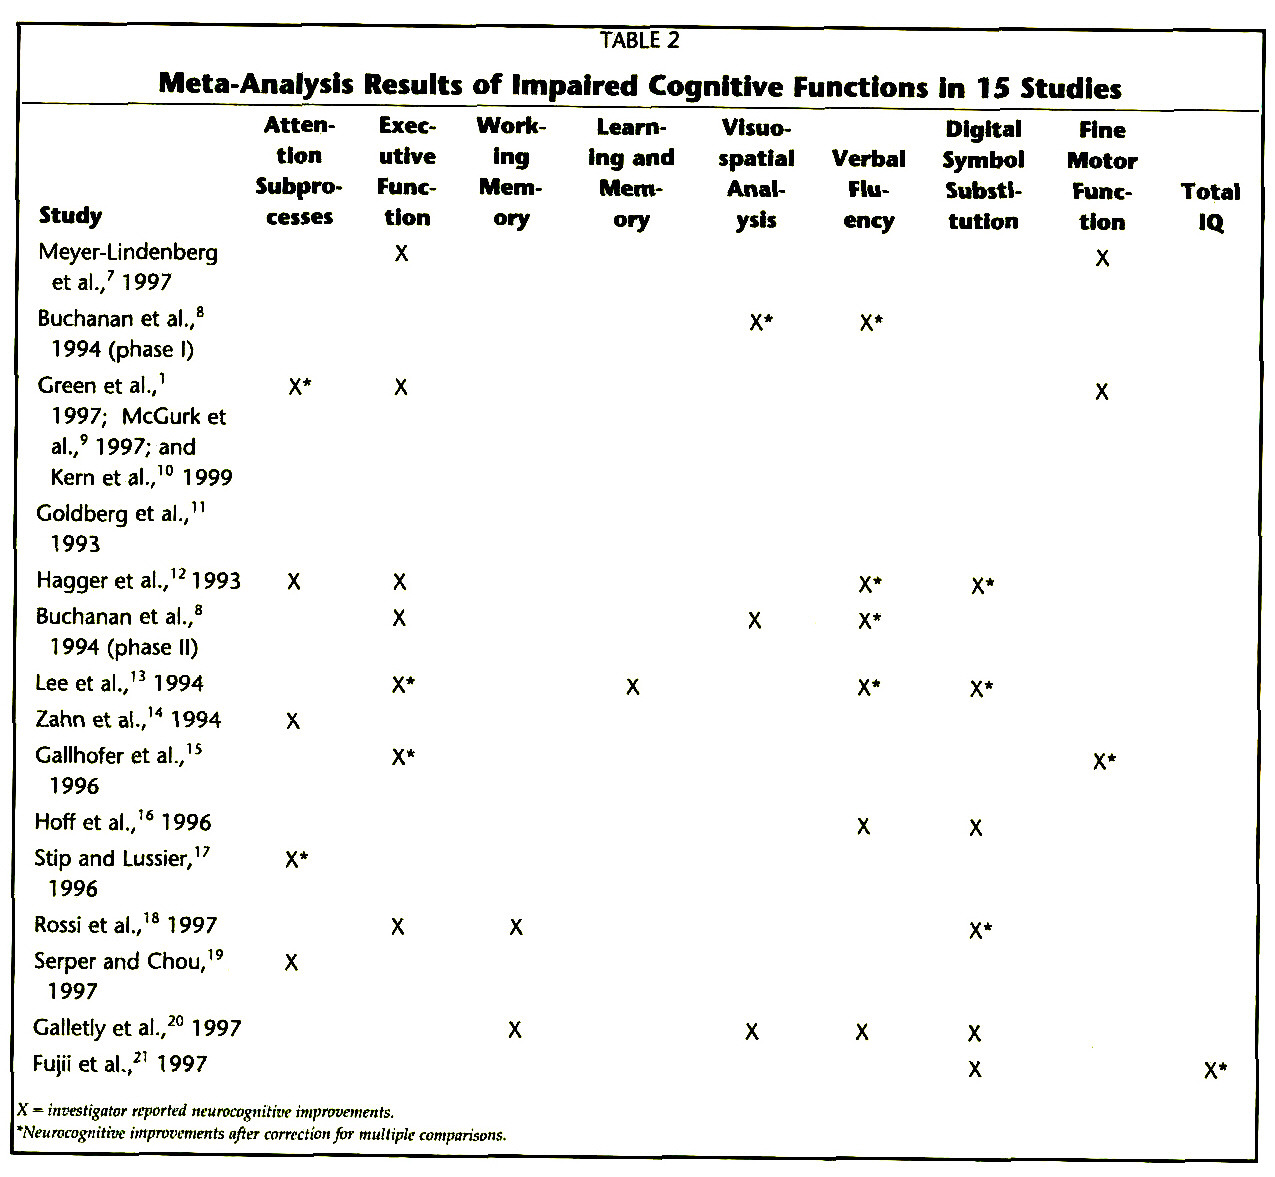 TABLE 2Meta-Analysis Results of Impaired Cognitive Functions in 15 Studies